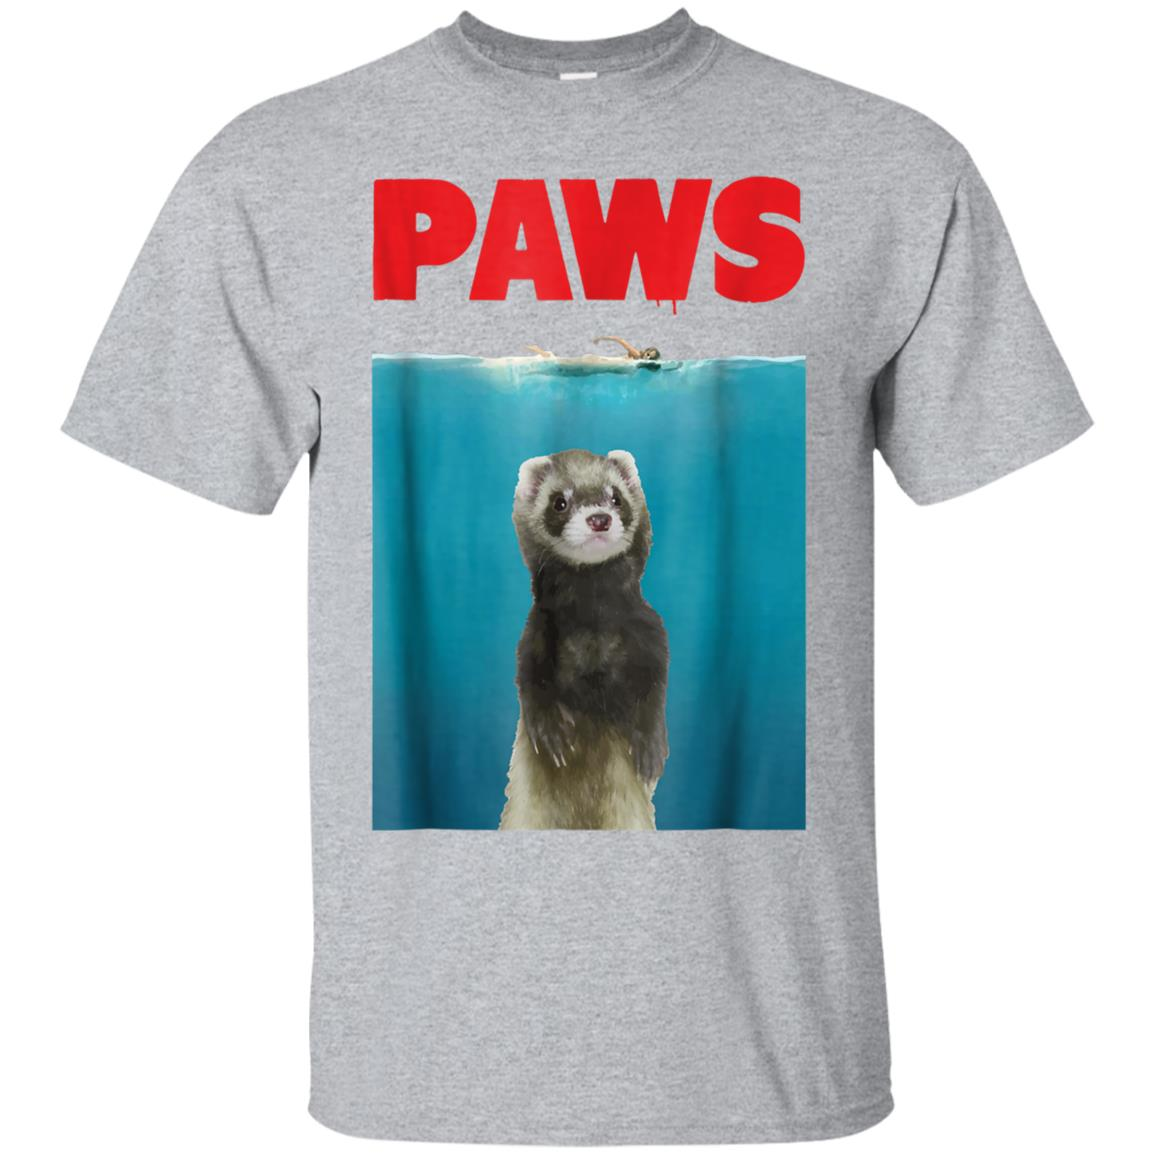 Paws Ferret Funny T-Shirt Parody  Ferret Lover Gifts 99promocode